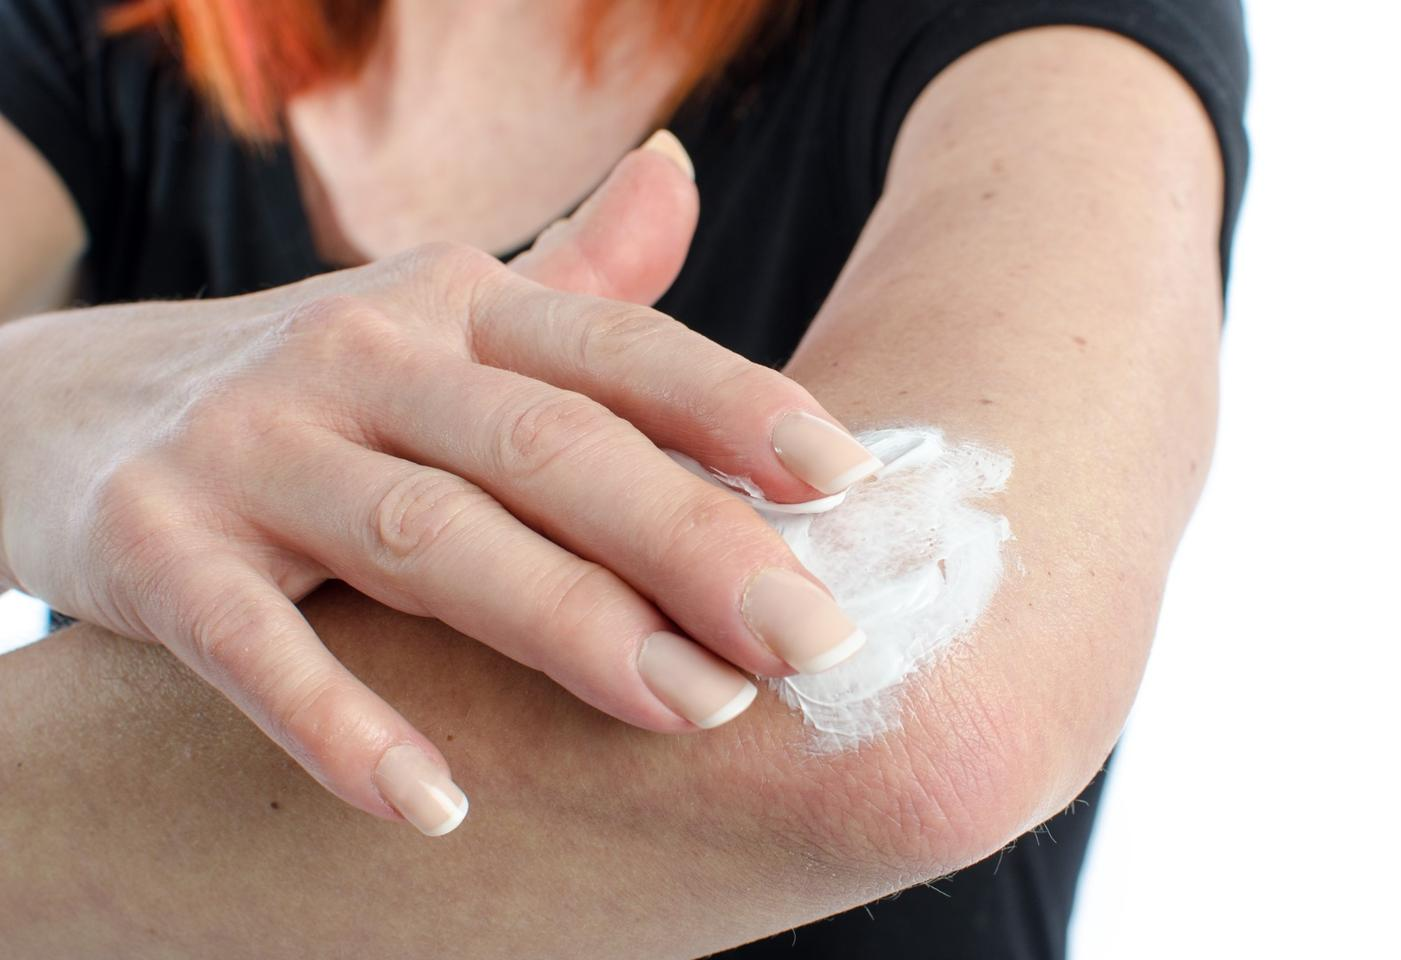 Researchers have made the first steps towards a chemotherapy gel that can be rubbed into the skin to treat melanoma